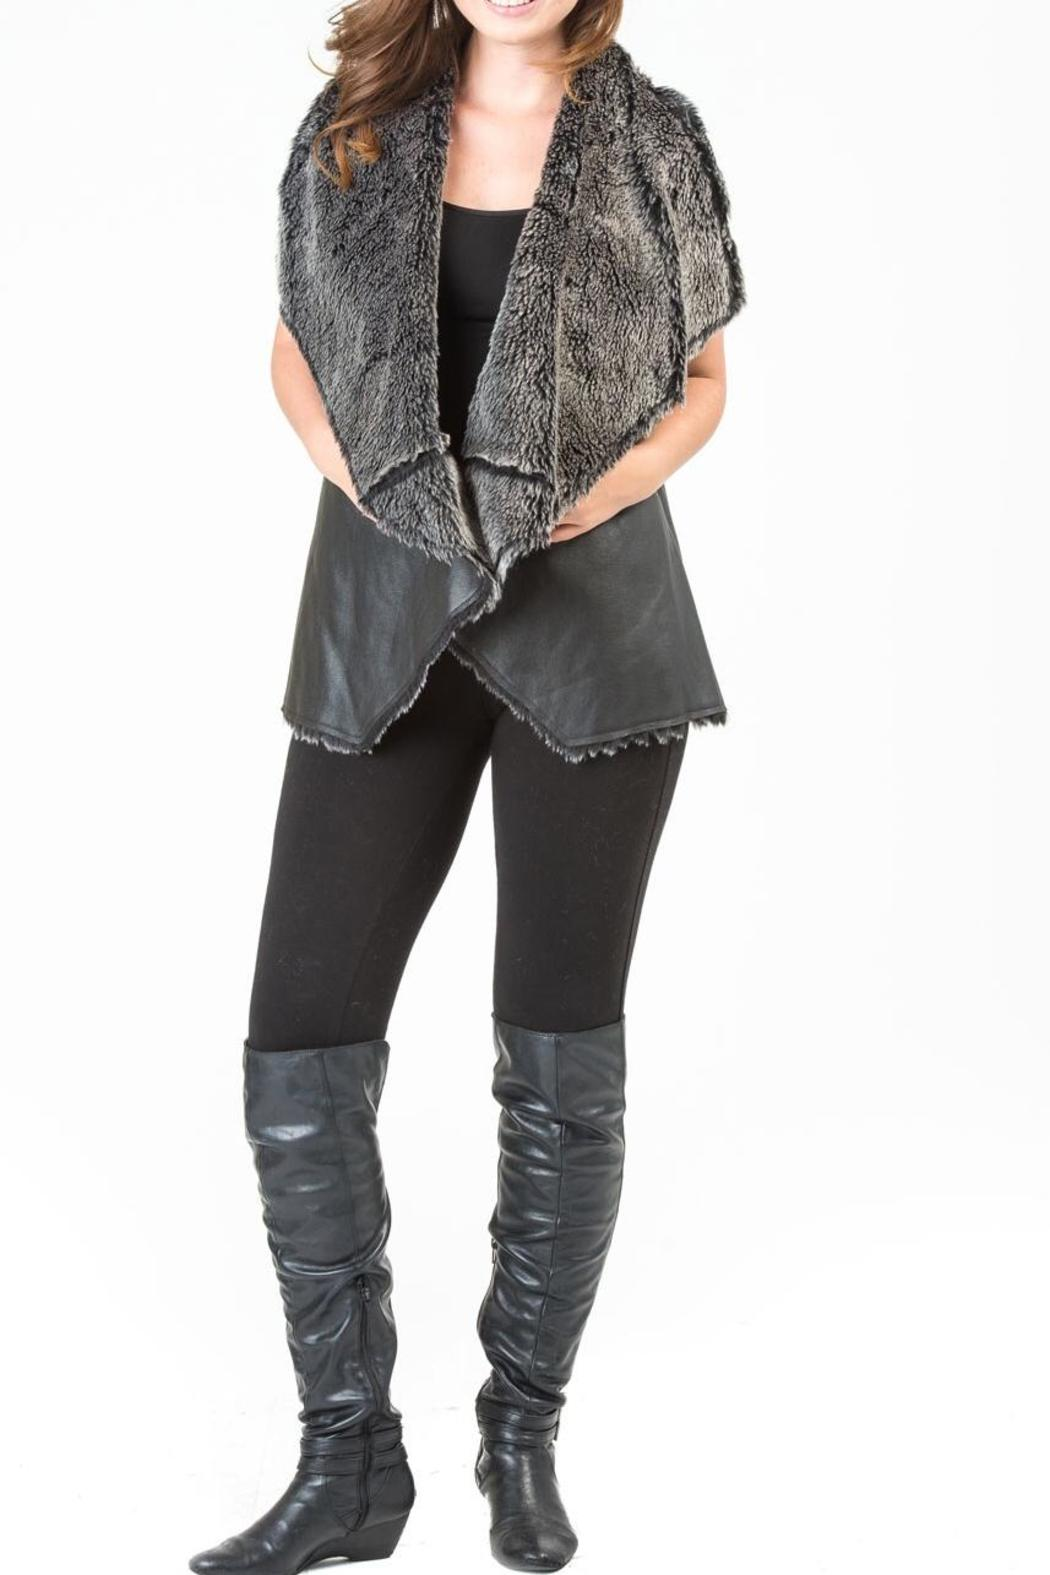 Locust Whimsy Vegan Black Vest - Main Image